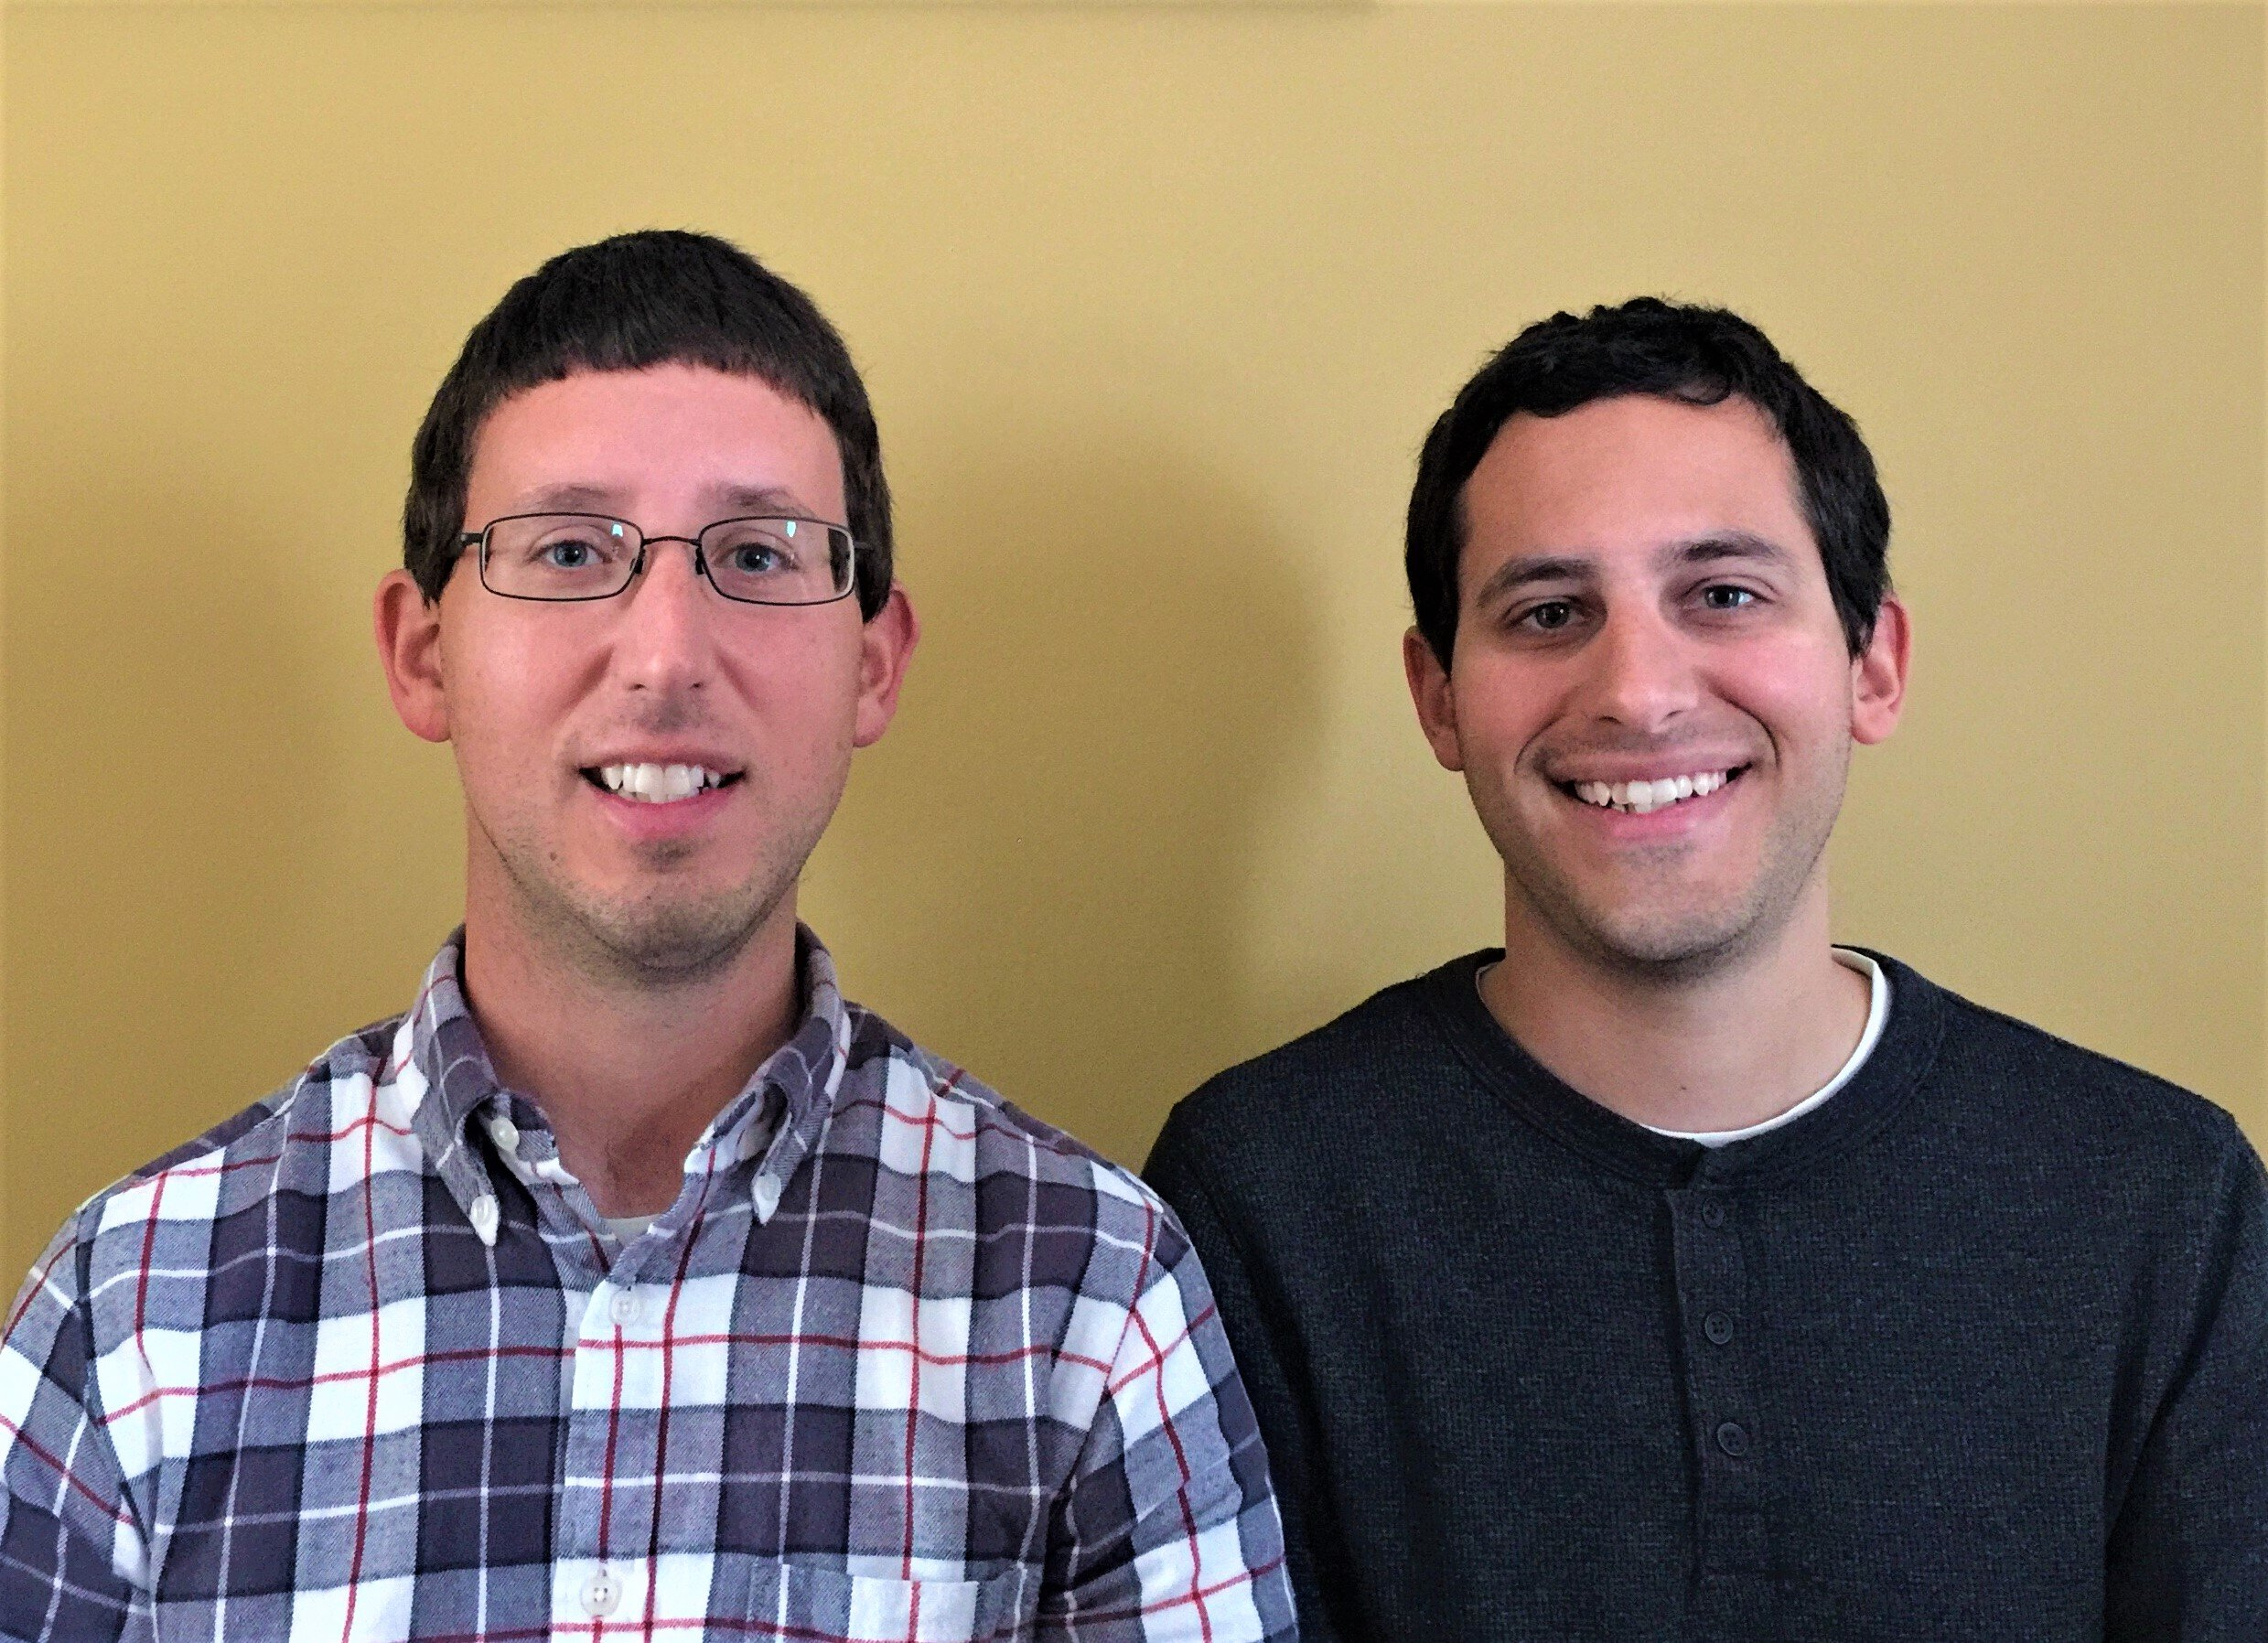 Brothers Anthony and Alex Hussak help small and medium sized businesses with data and Excel reports.